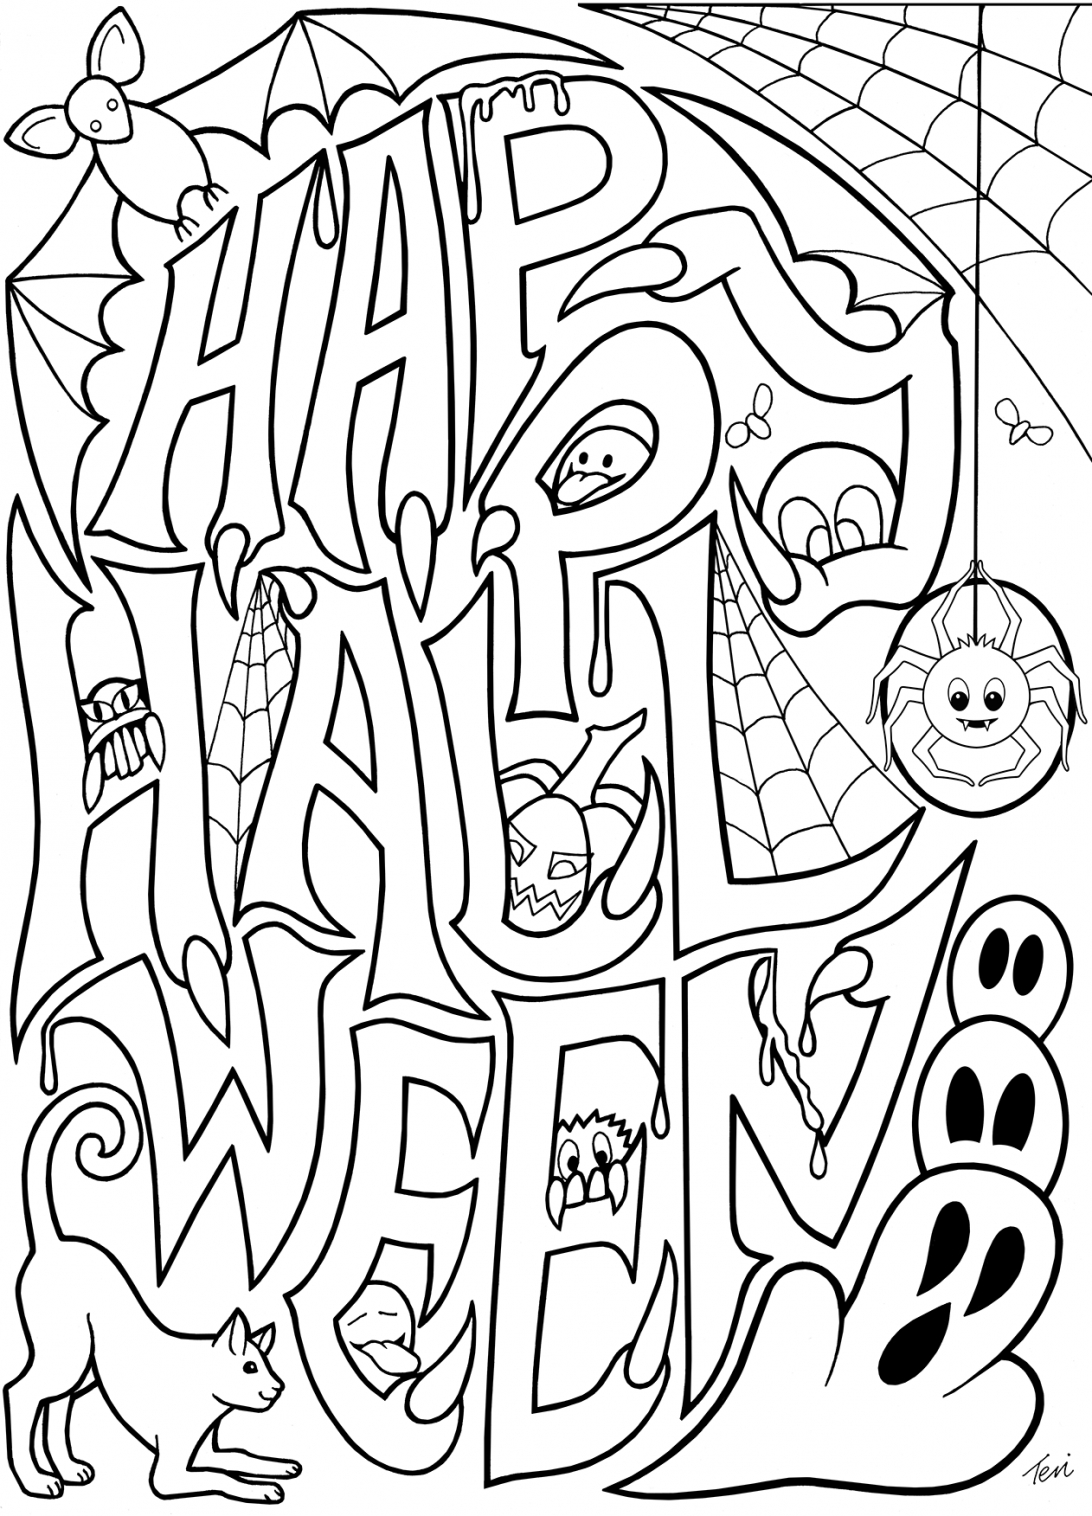 Free Scary Halloween Coloring Pages Coloring Book Halloween Coloring Pages For Toddlers Spiders To